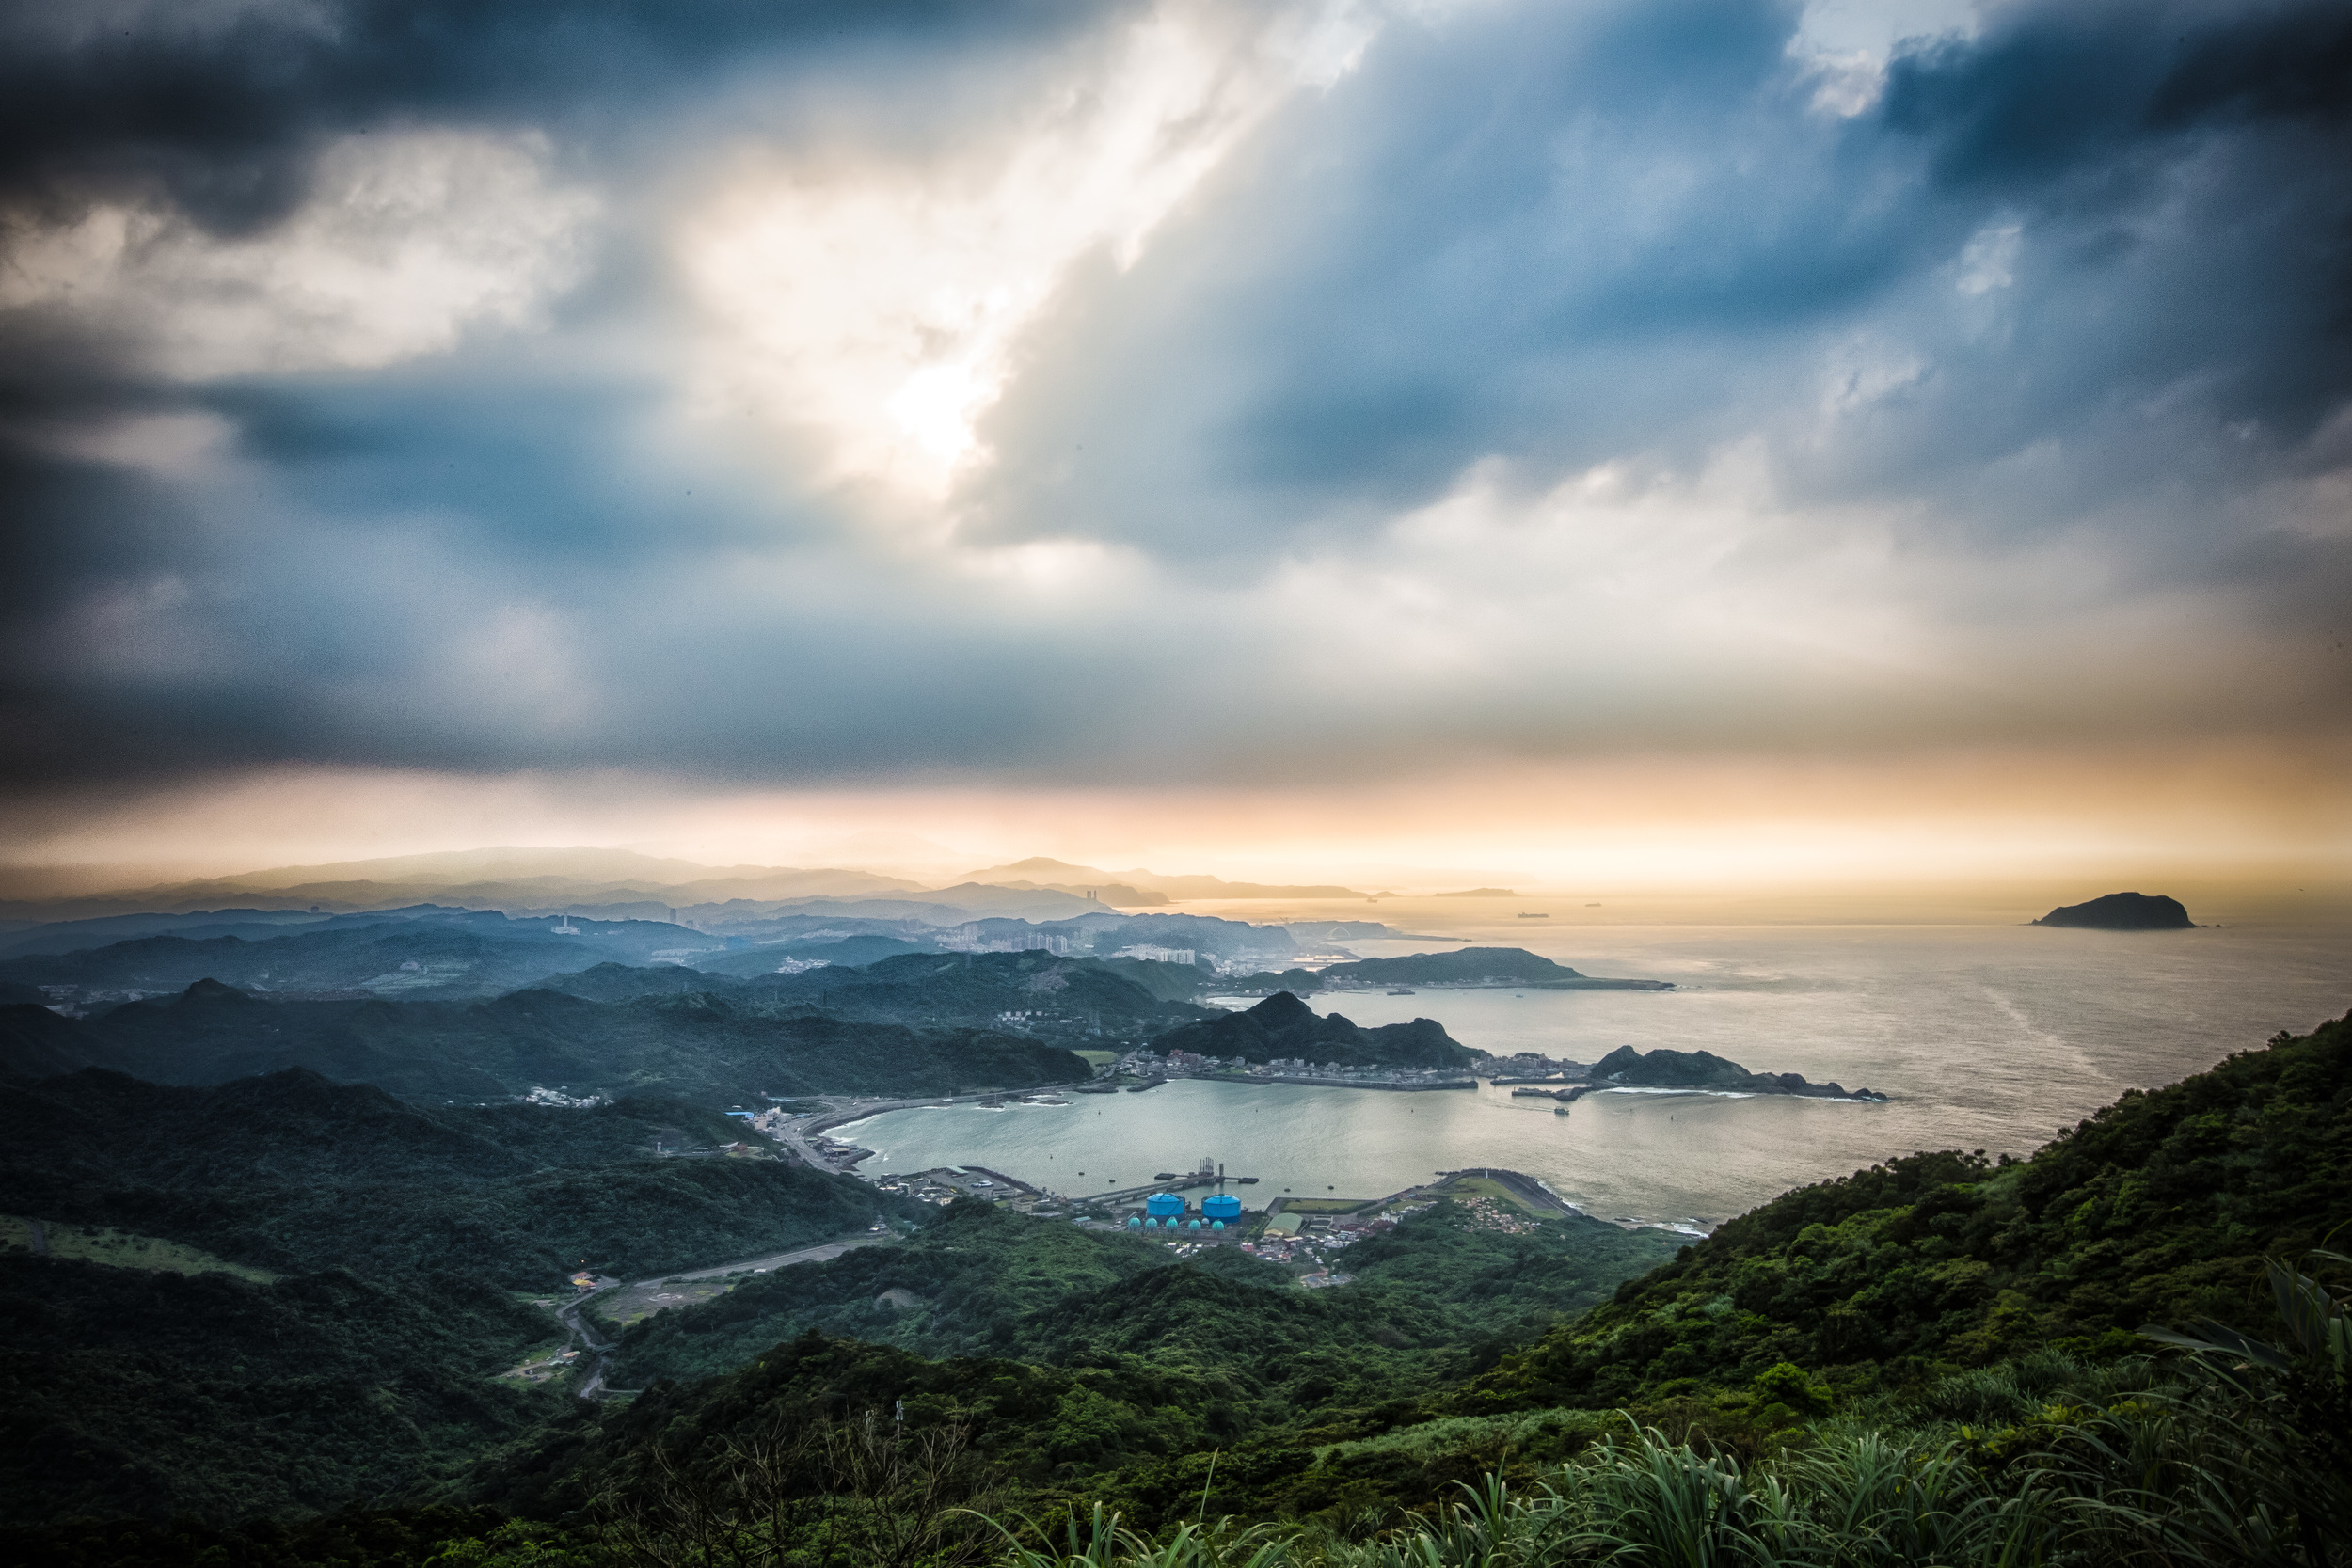 View of the north coast of Taiwan from the top of Jilong Mountain (雞籠山)